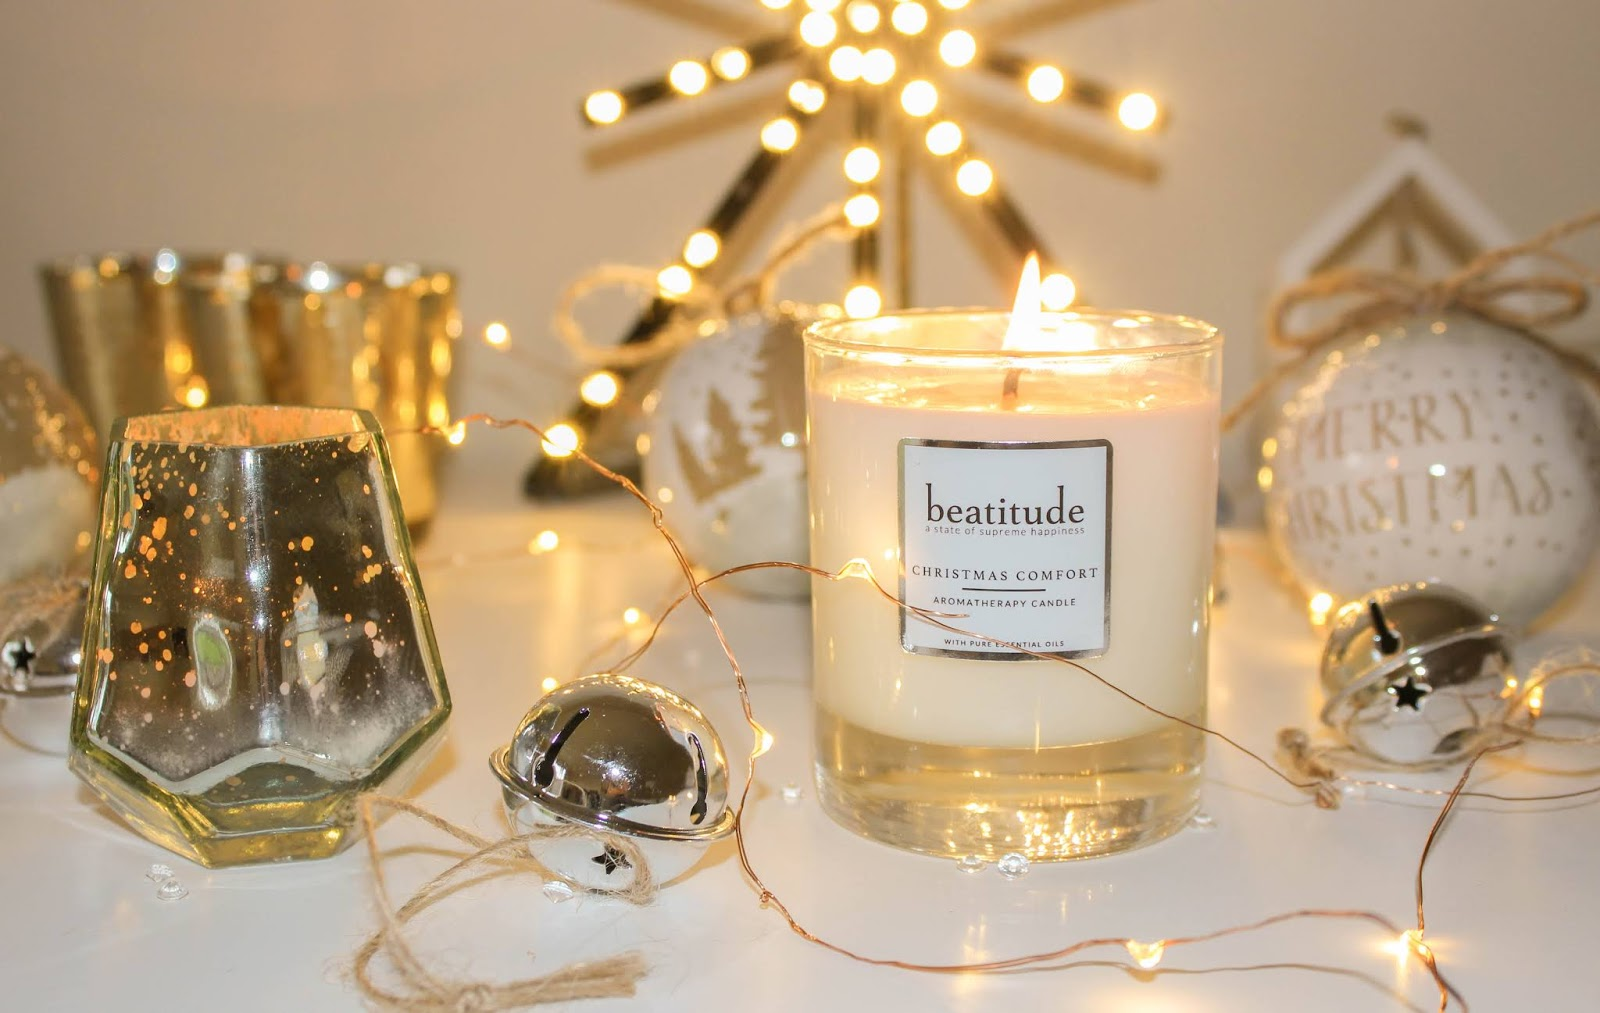 Fill Your Home With Festive Fragrance: The Scented Candles I'm Loving (And Lusting After) This Christmas